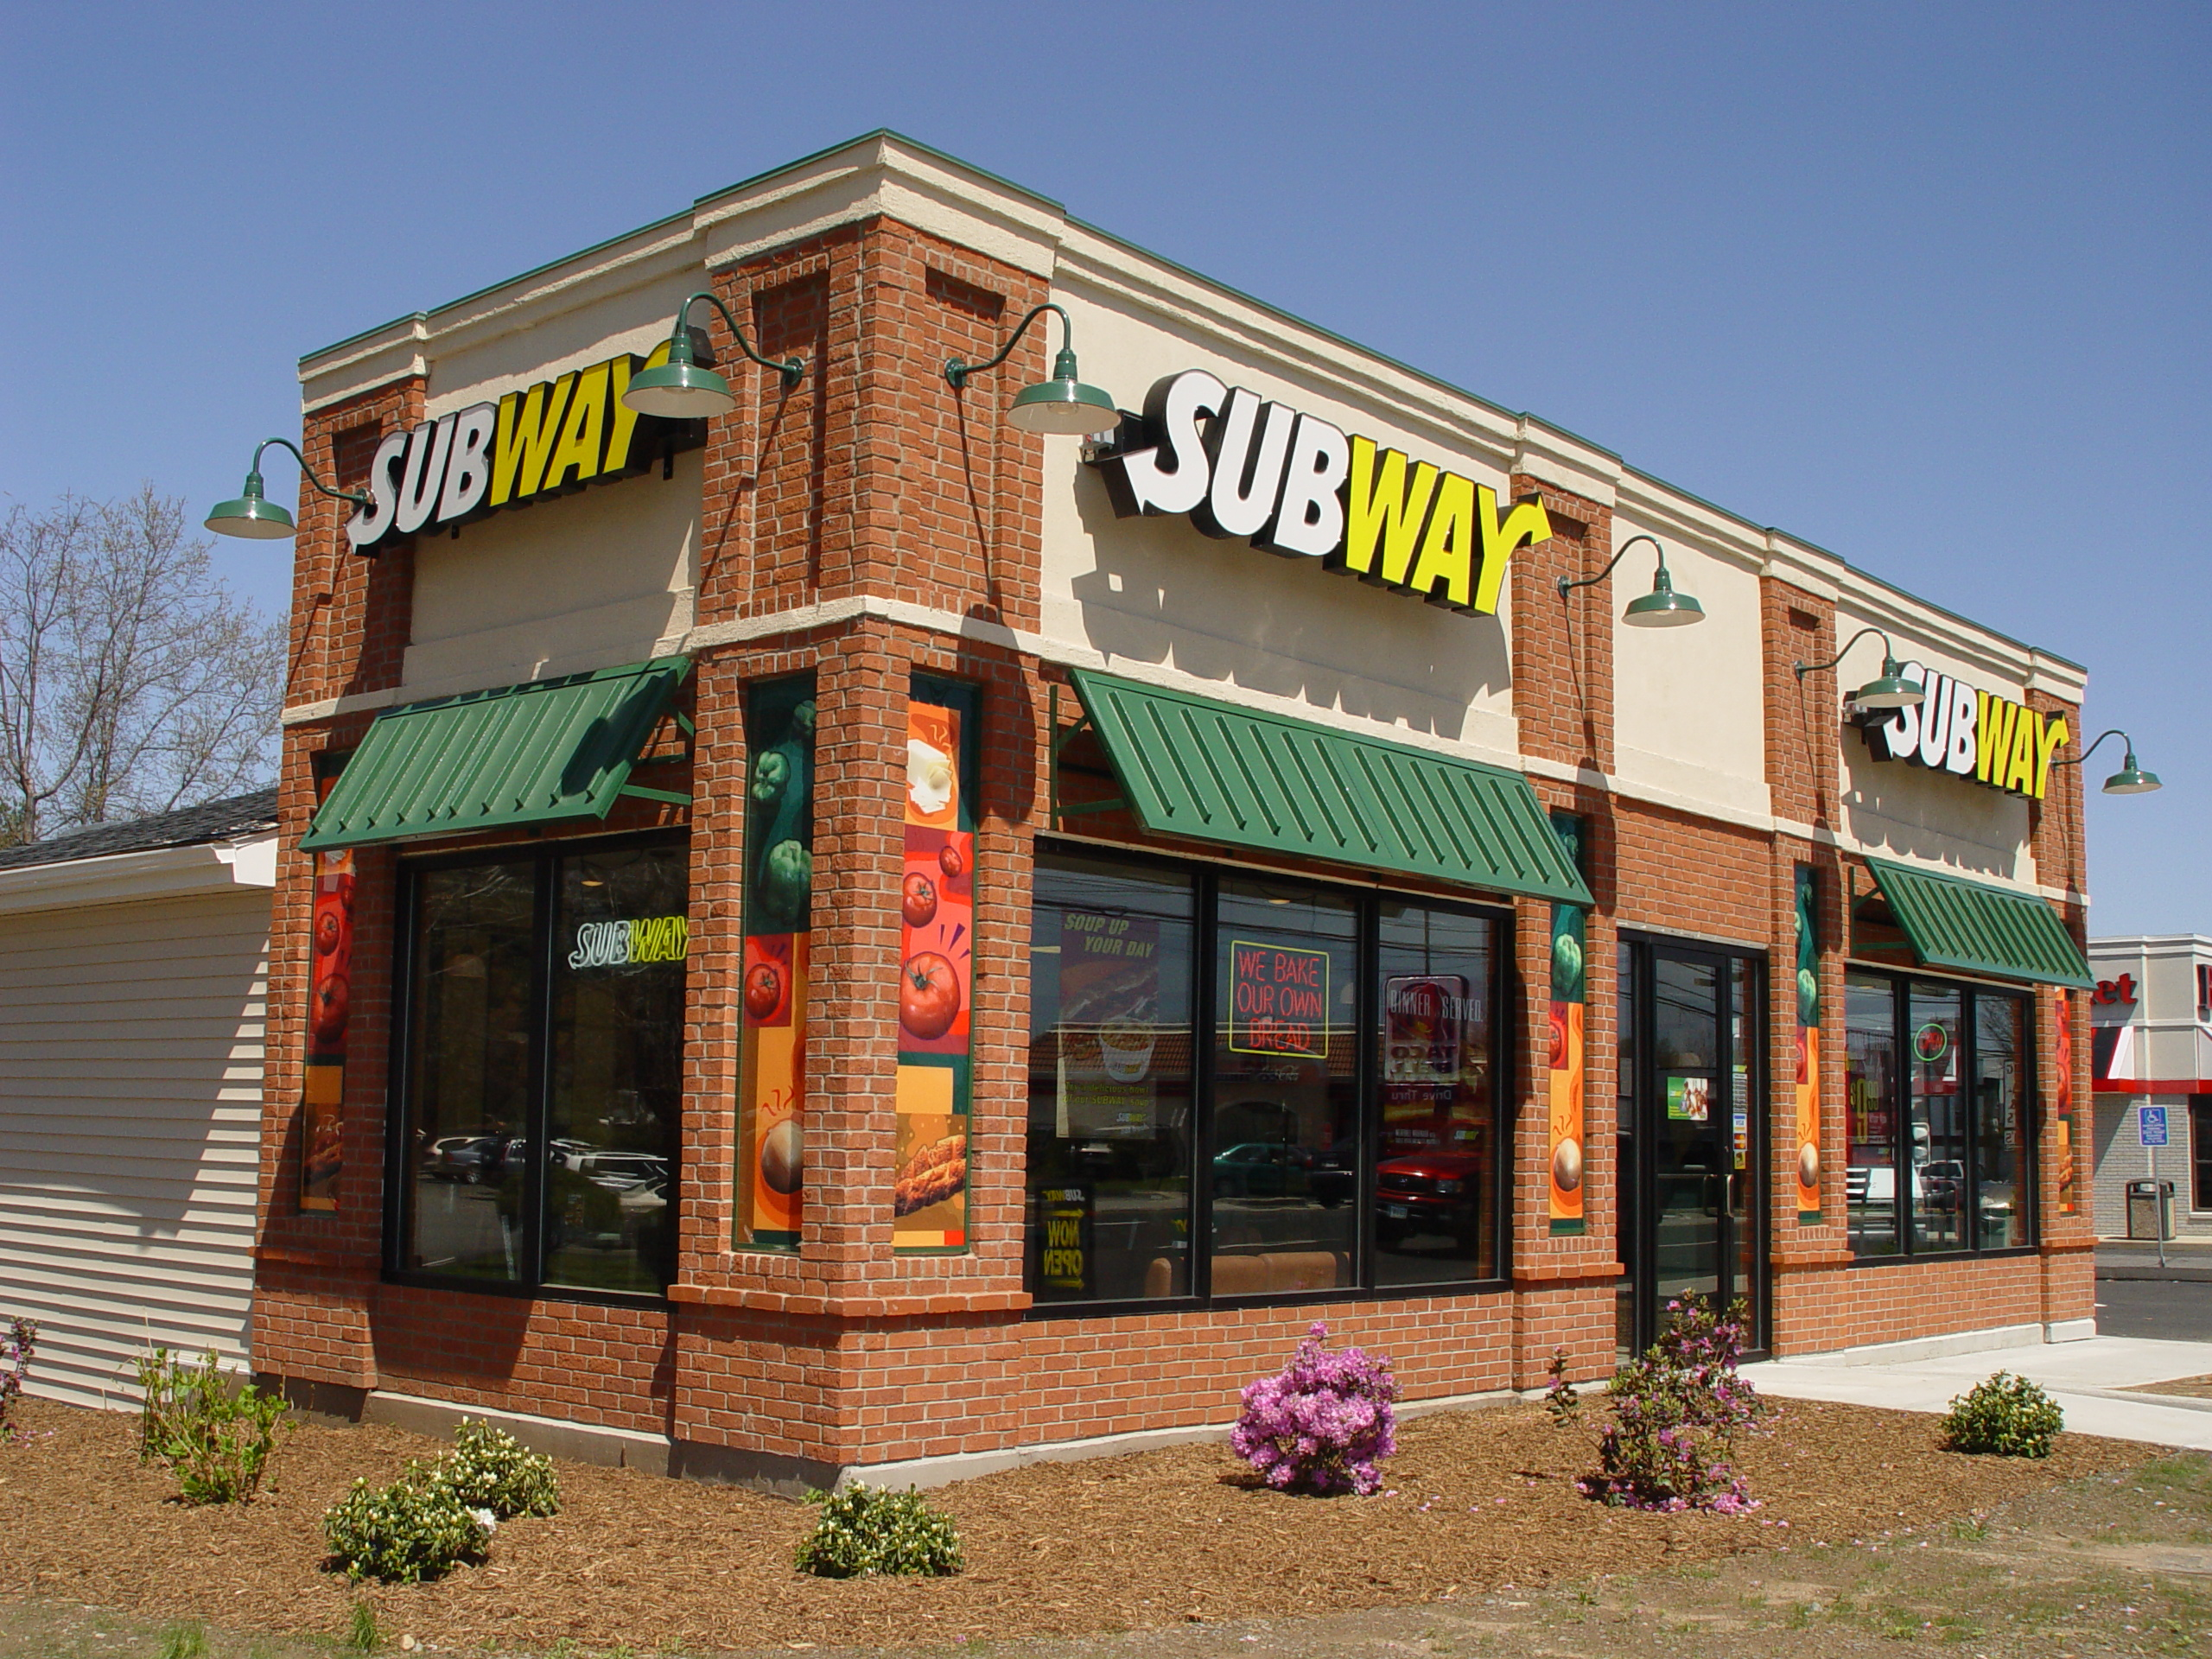 Subway, Palmerton PA